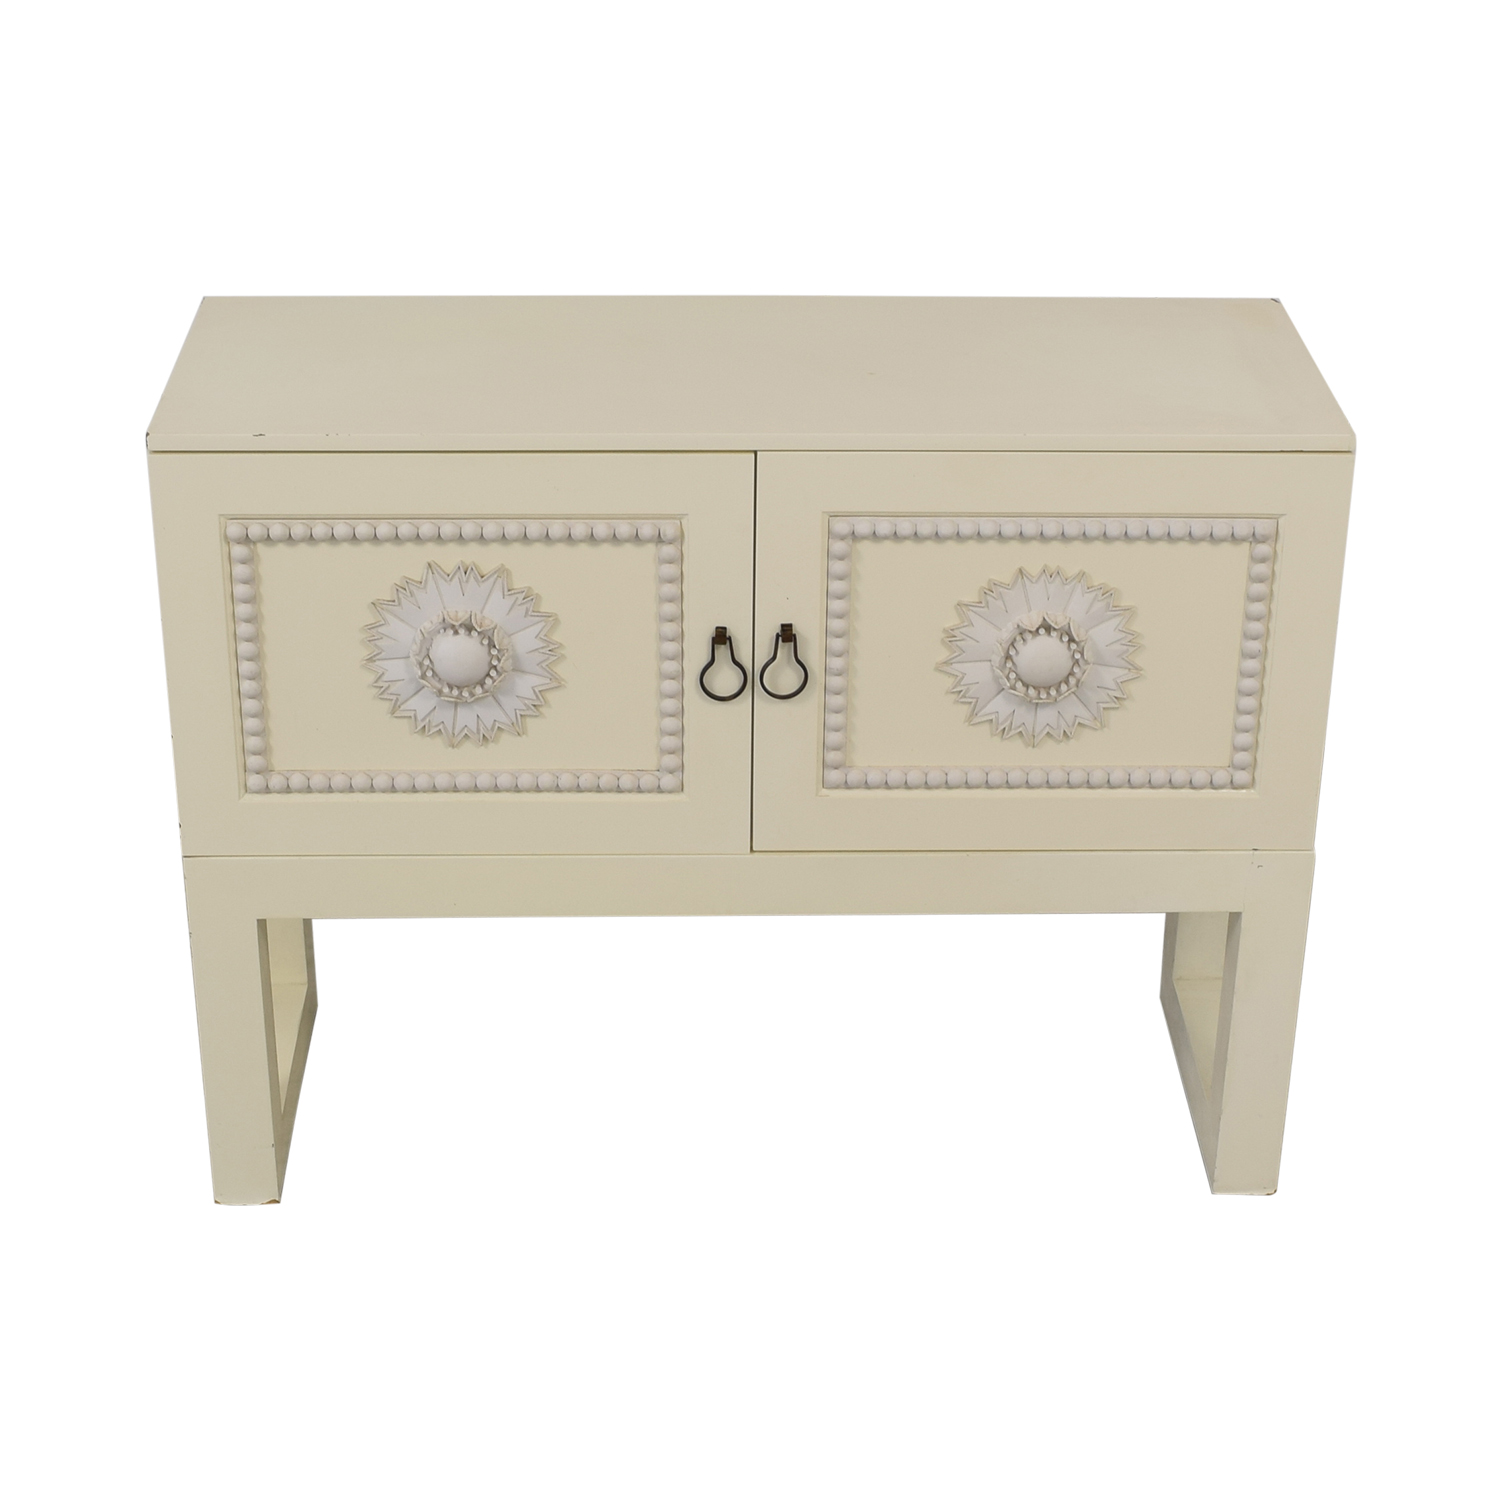 Shine by S.H.O Shine by S.H.O. Milian Console for sale